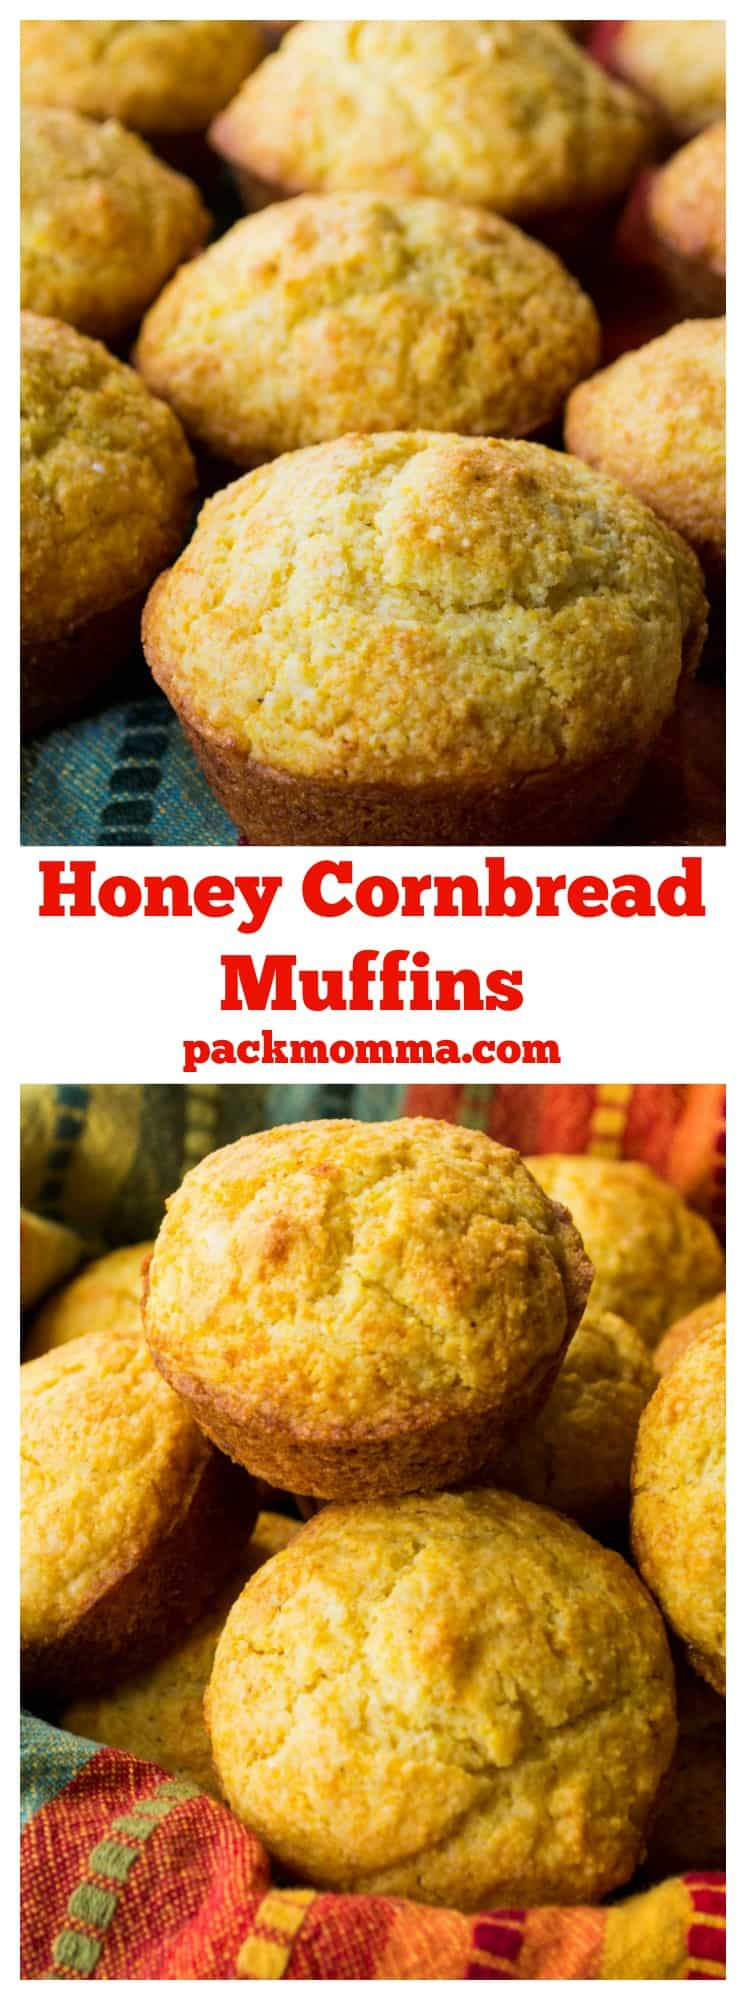 Honey Cornbread Muffins | These Honey Cornbread Muffins are super easy and super fast to make. They are moist and sweet and the perfect complement to any of your favorite meals. | Pack Momma | www.packmomma.com